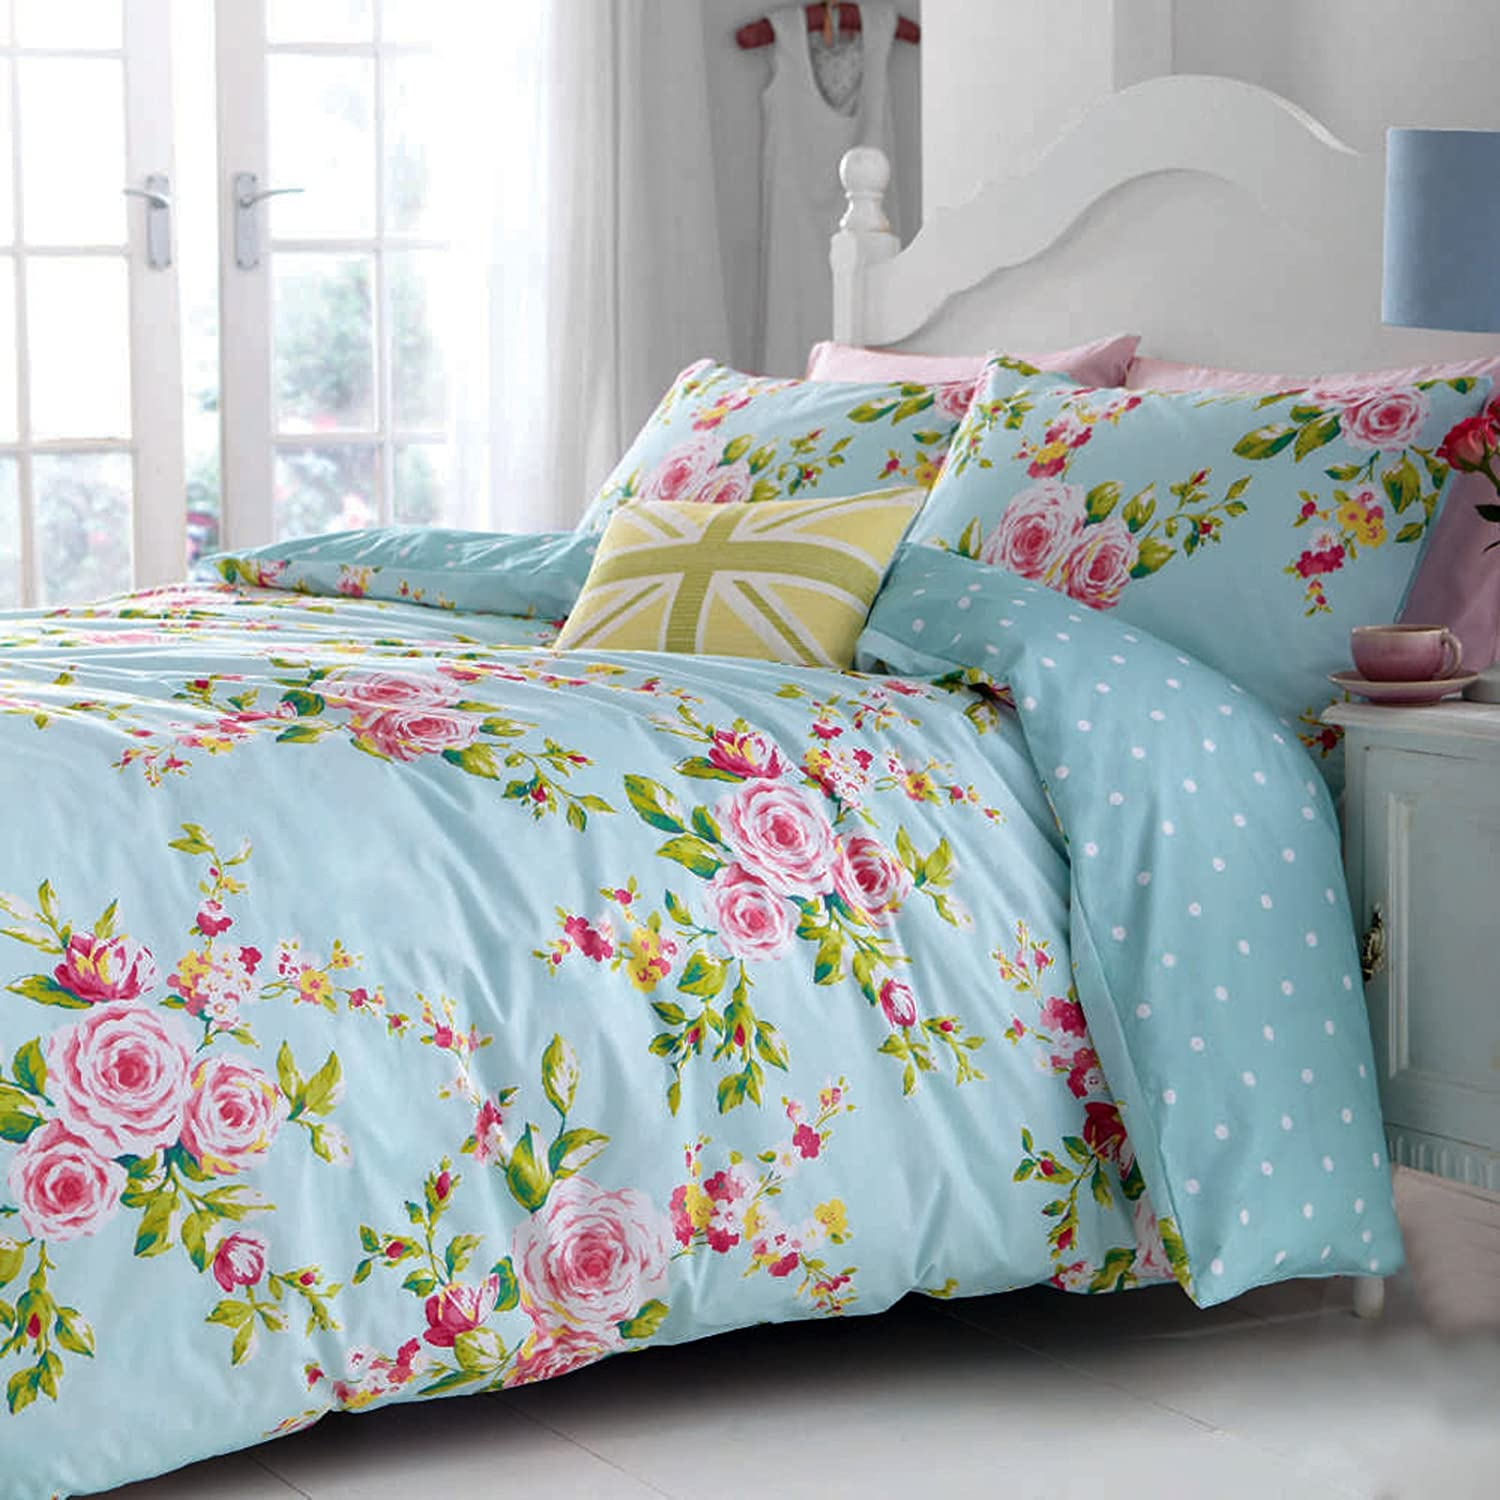 sets queen ding comforter bed comforters the tumblr hunt pics vintage floral sheets on